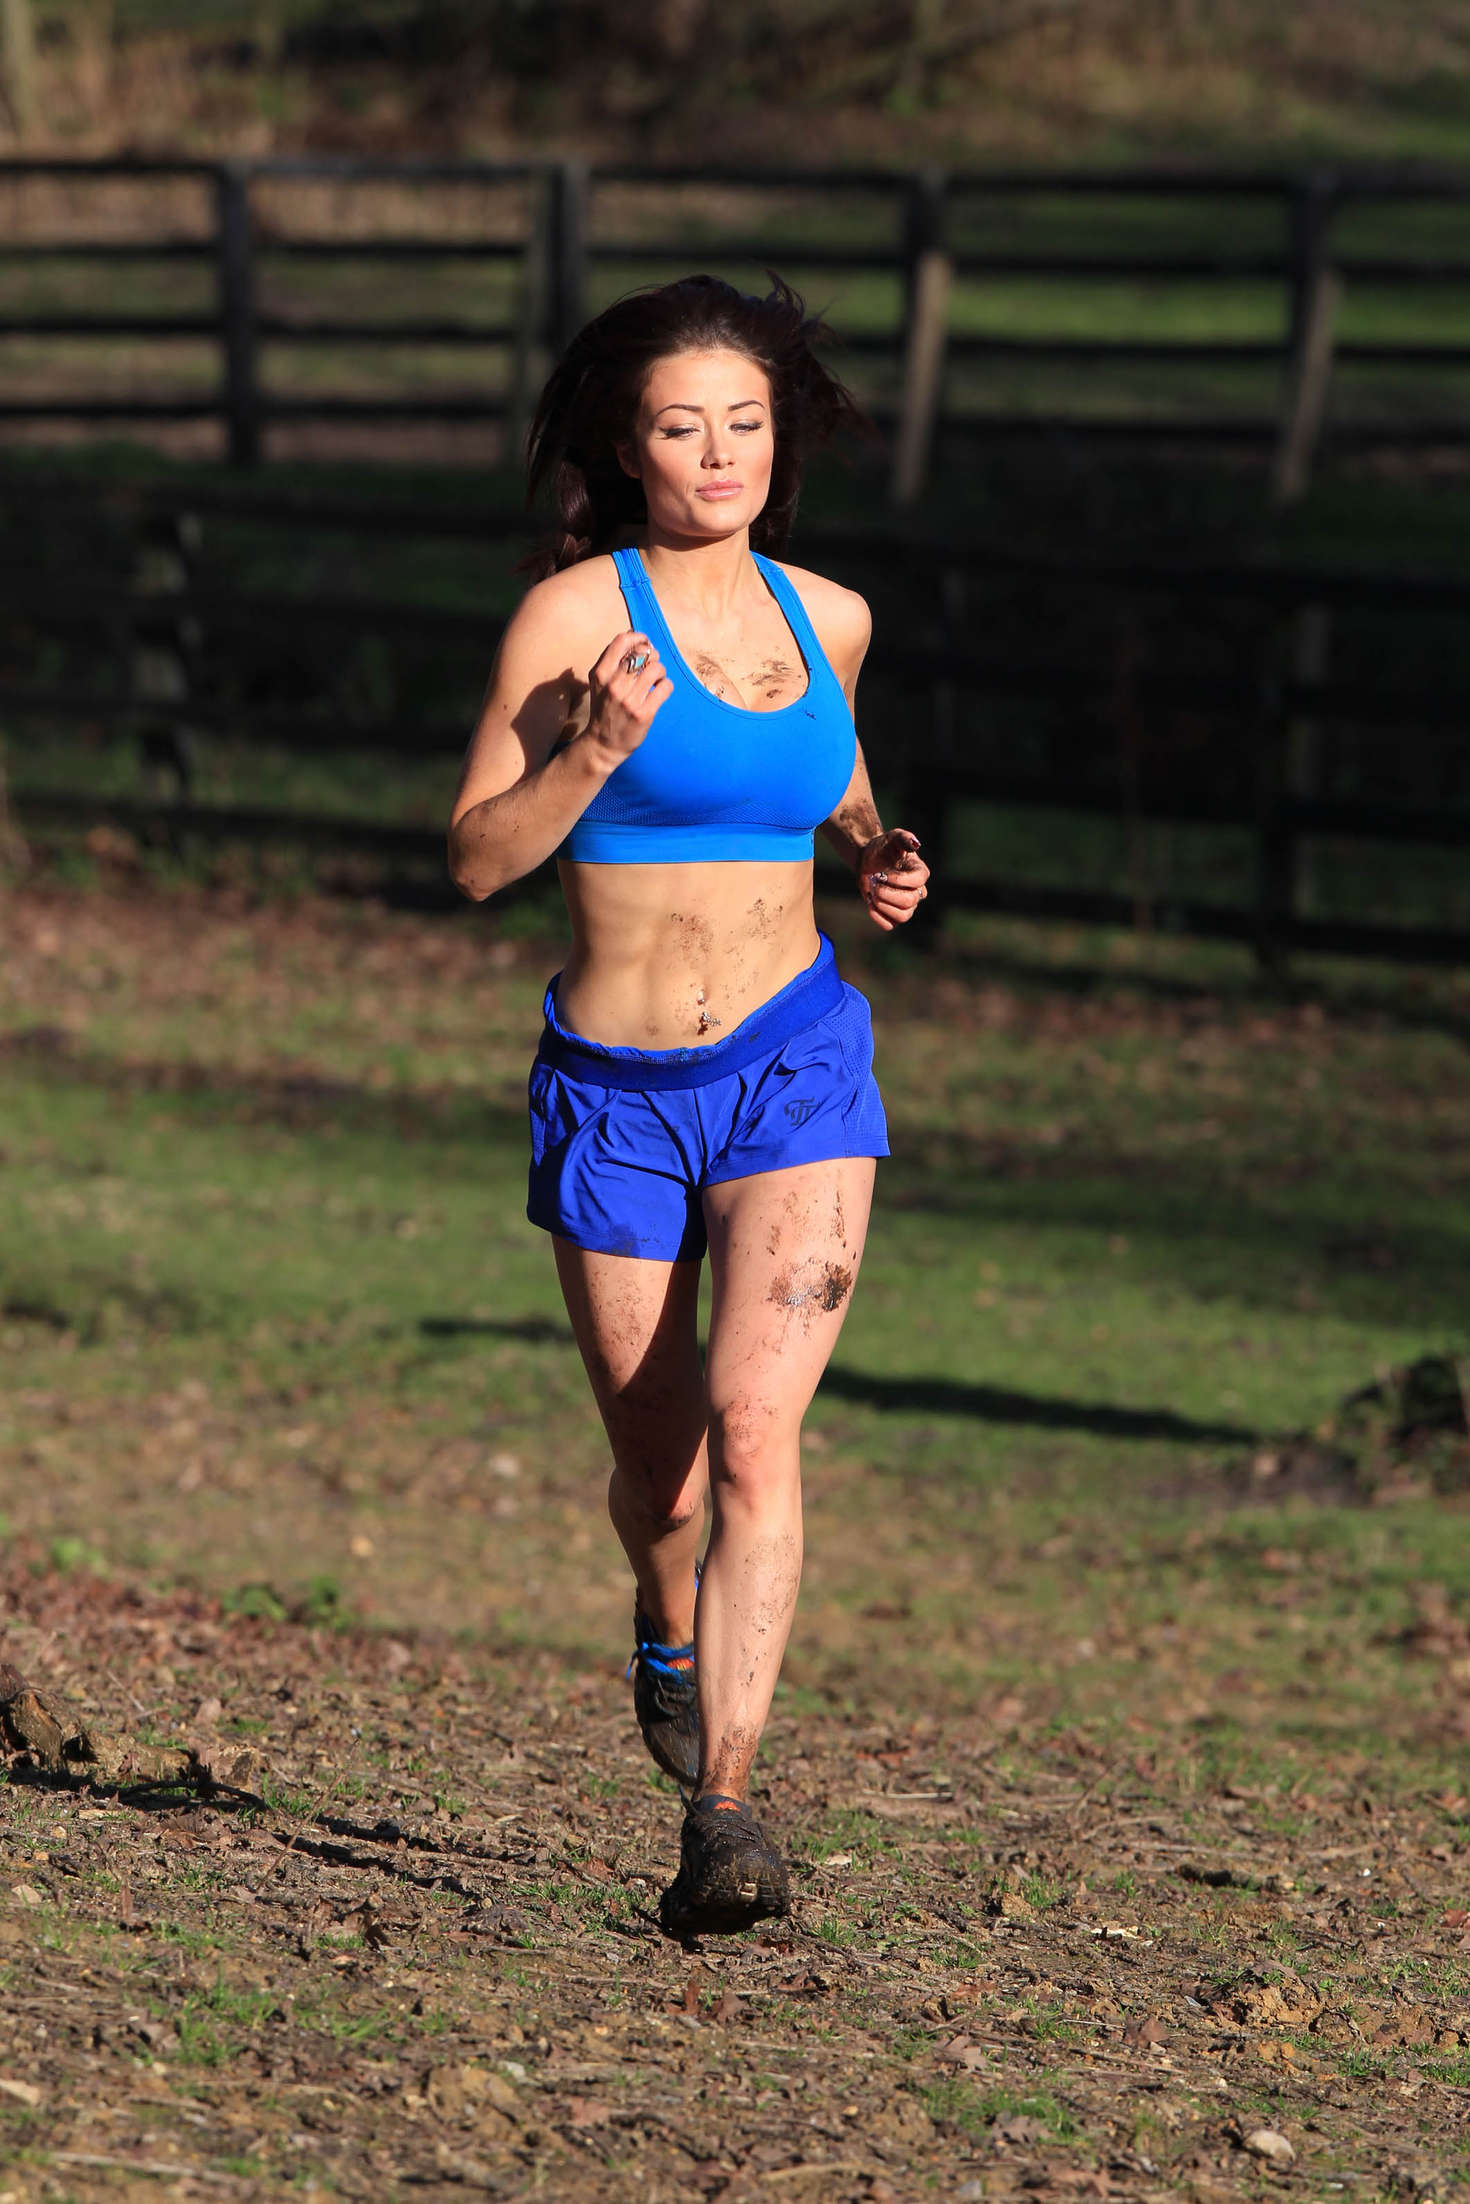 Jess Impiazzi In Blue Shorts And Sports Bra 04 GotCeleb